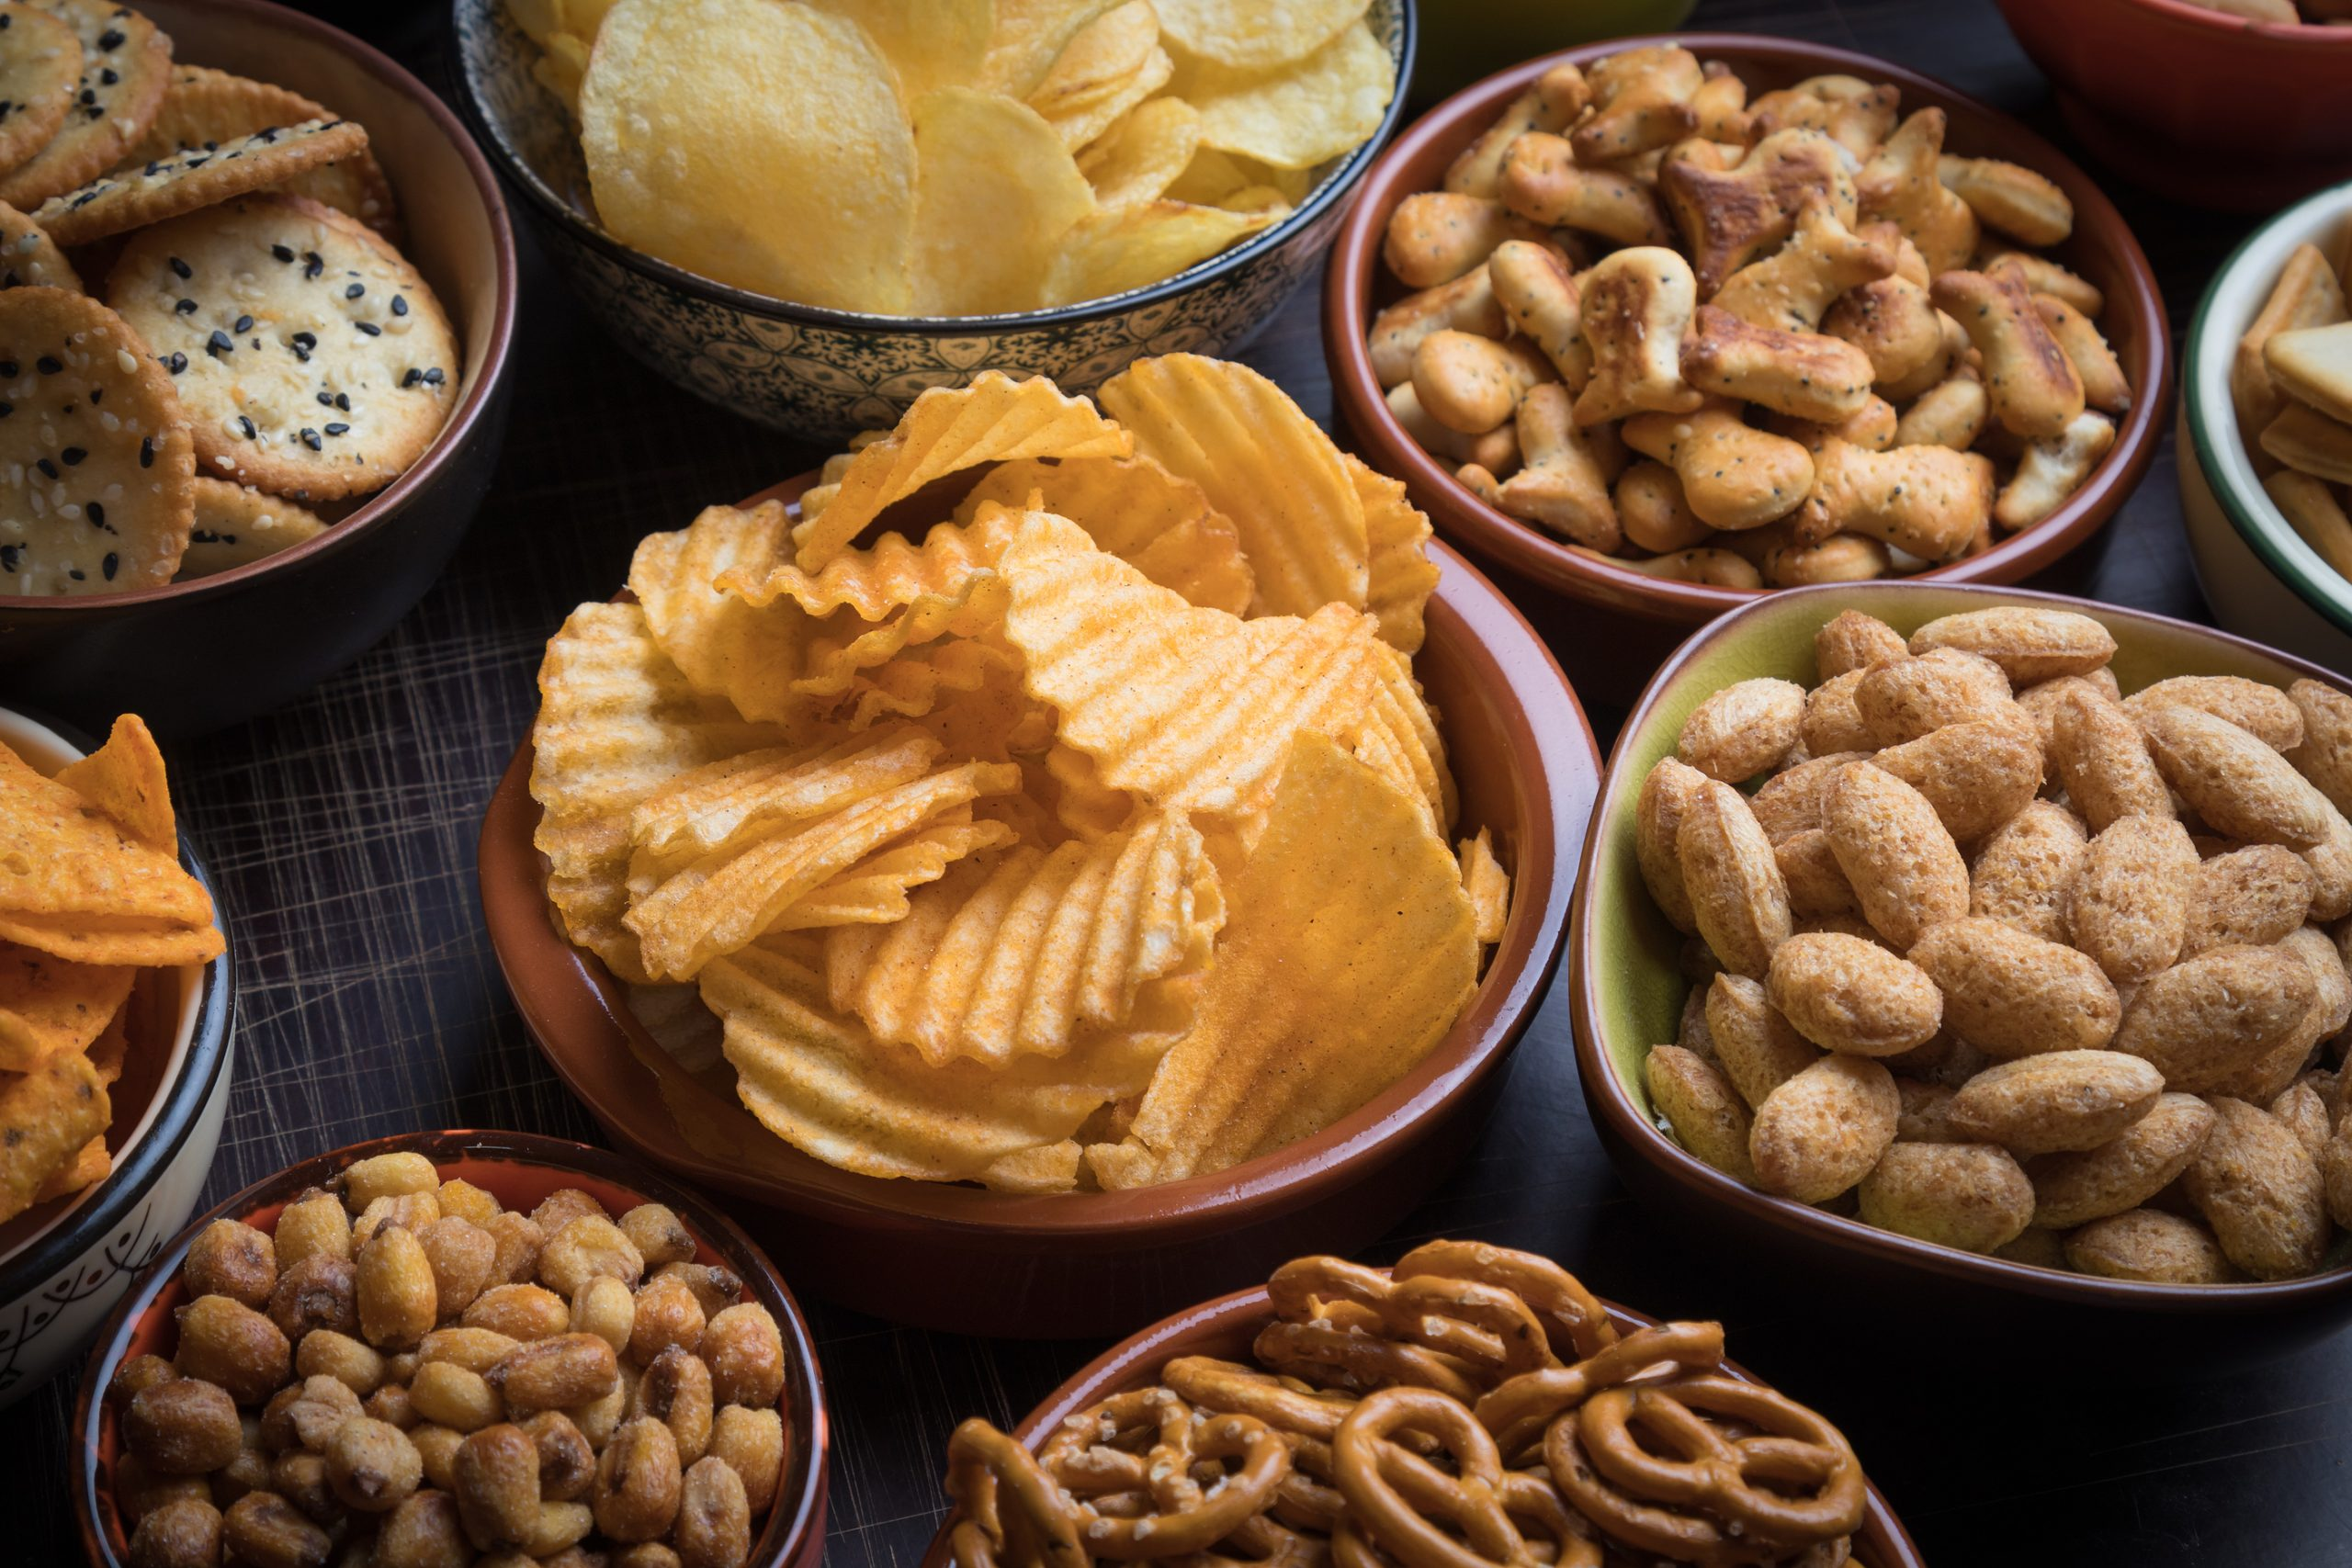 salty foods that contribute to dry mouths